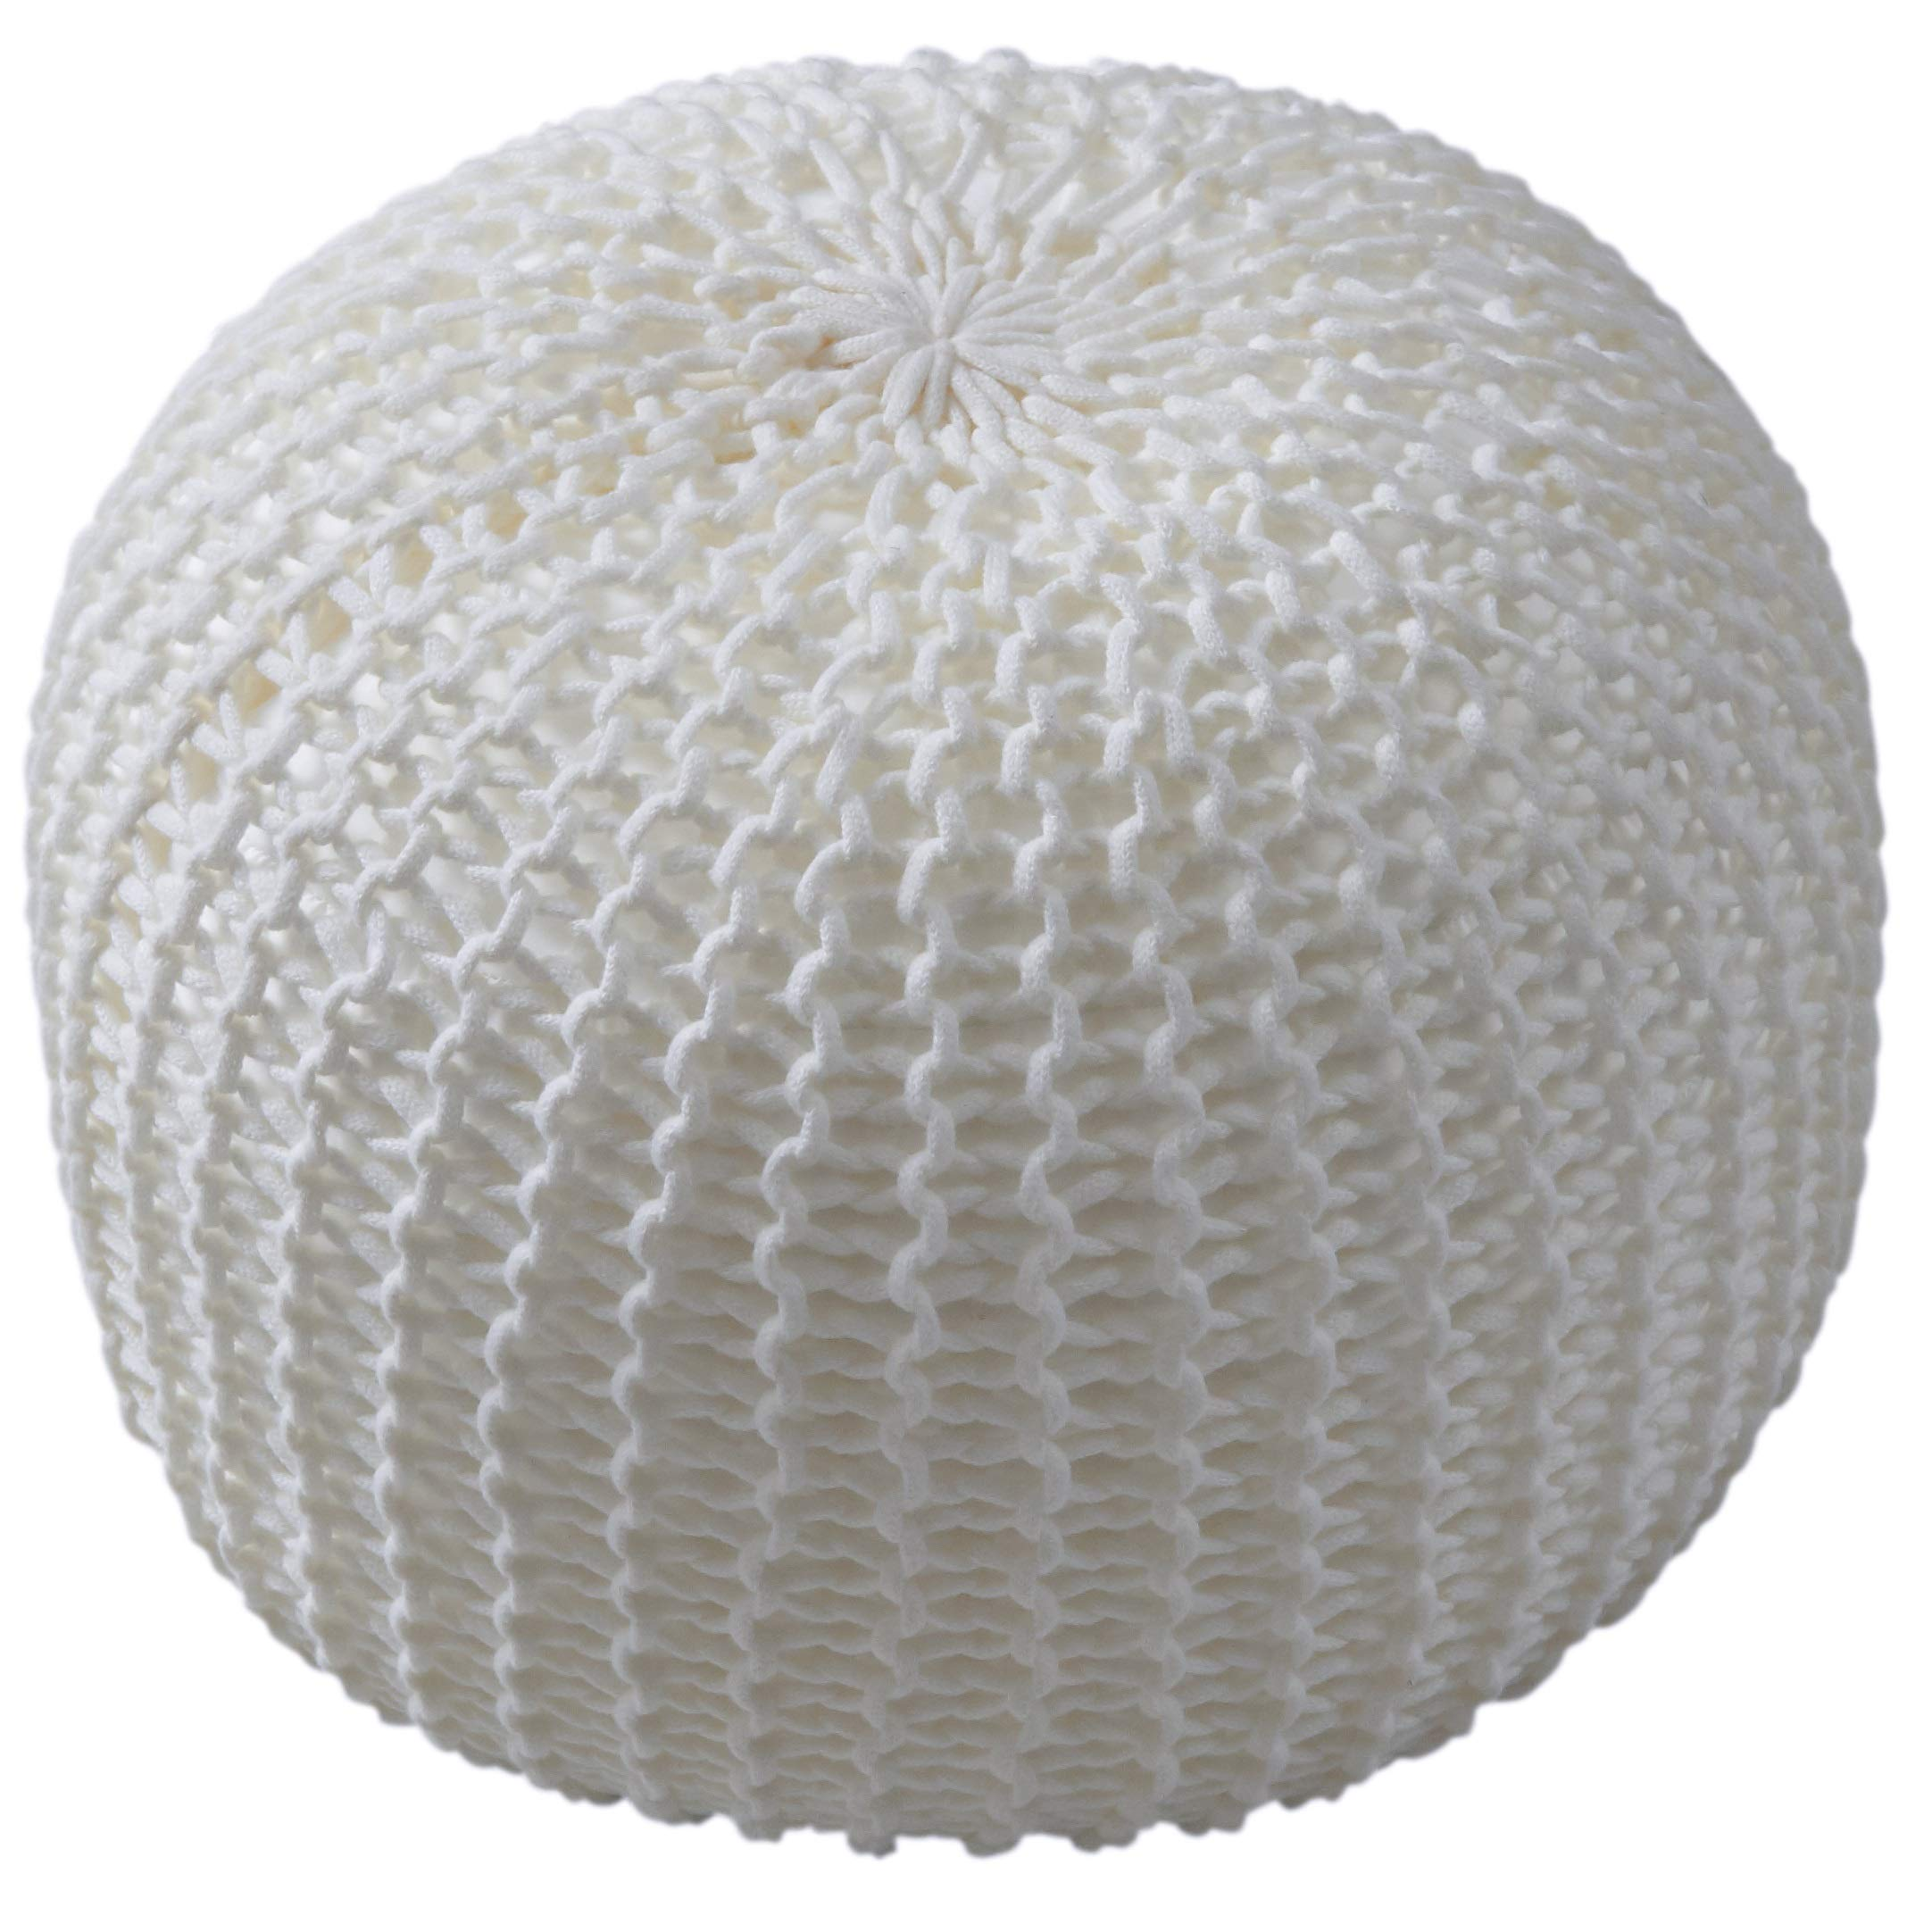 Cheer Collection 18'' Round Pouf Ottoman - Chunky Hand-Knit Decorative and Comfortable Foot Rest, Ivory by Cheer Collection